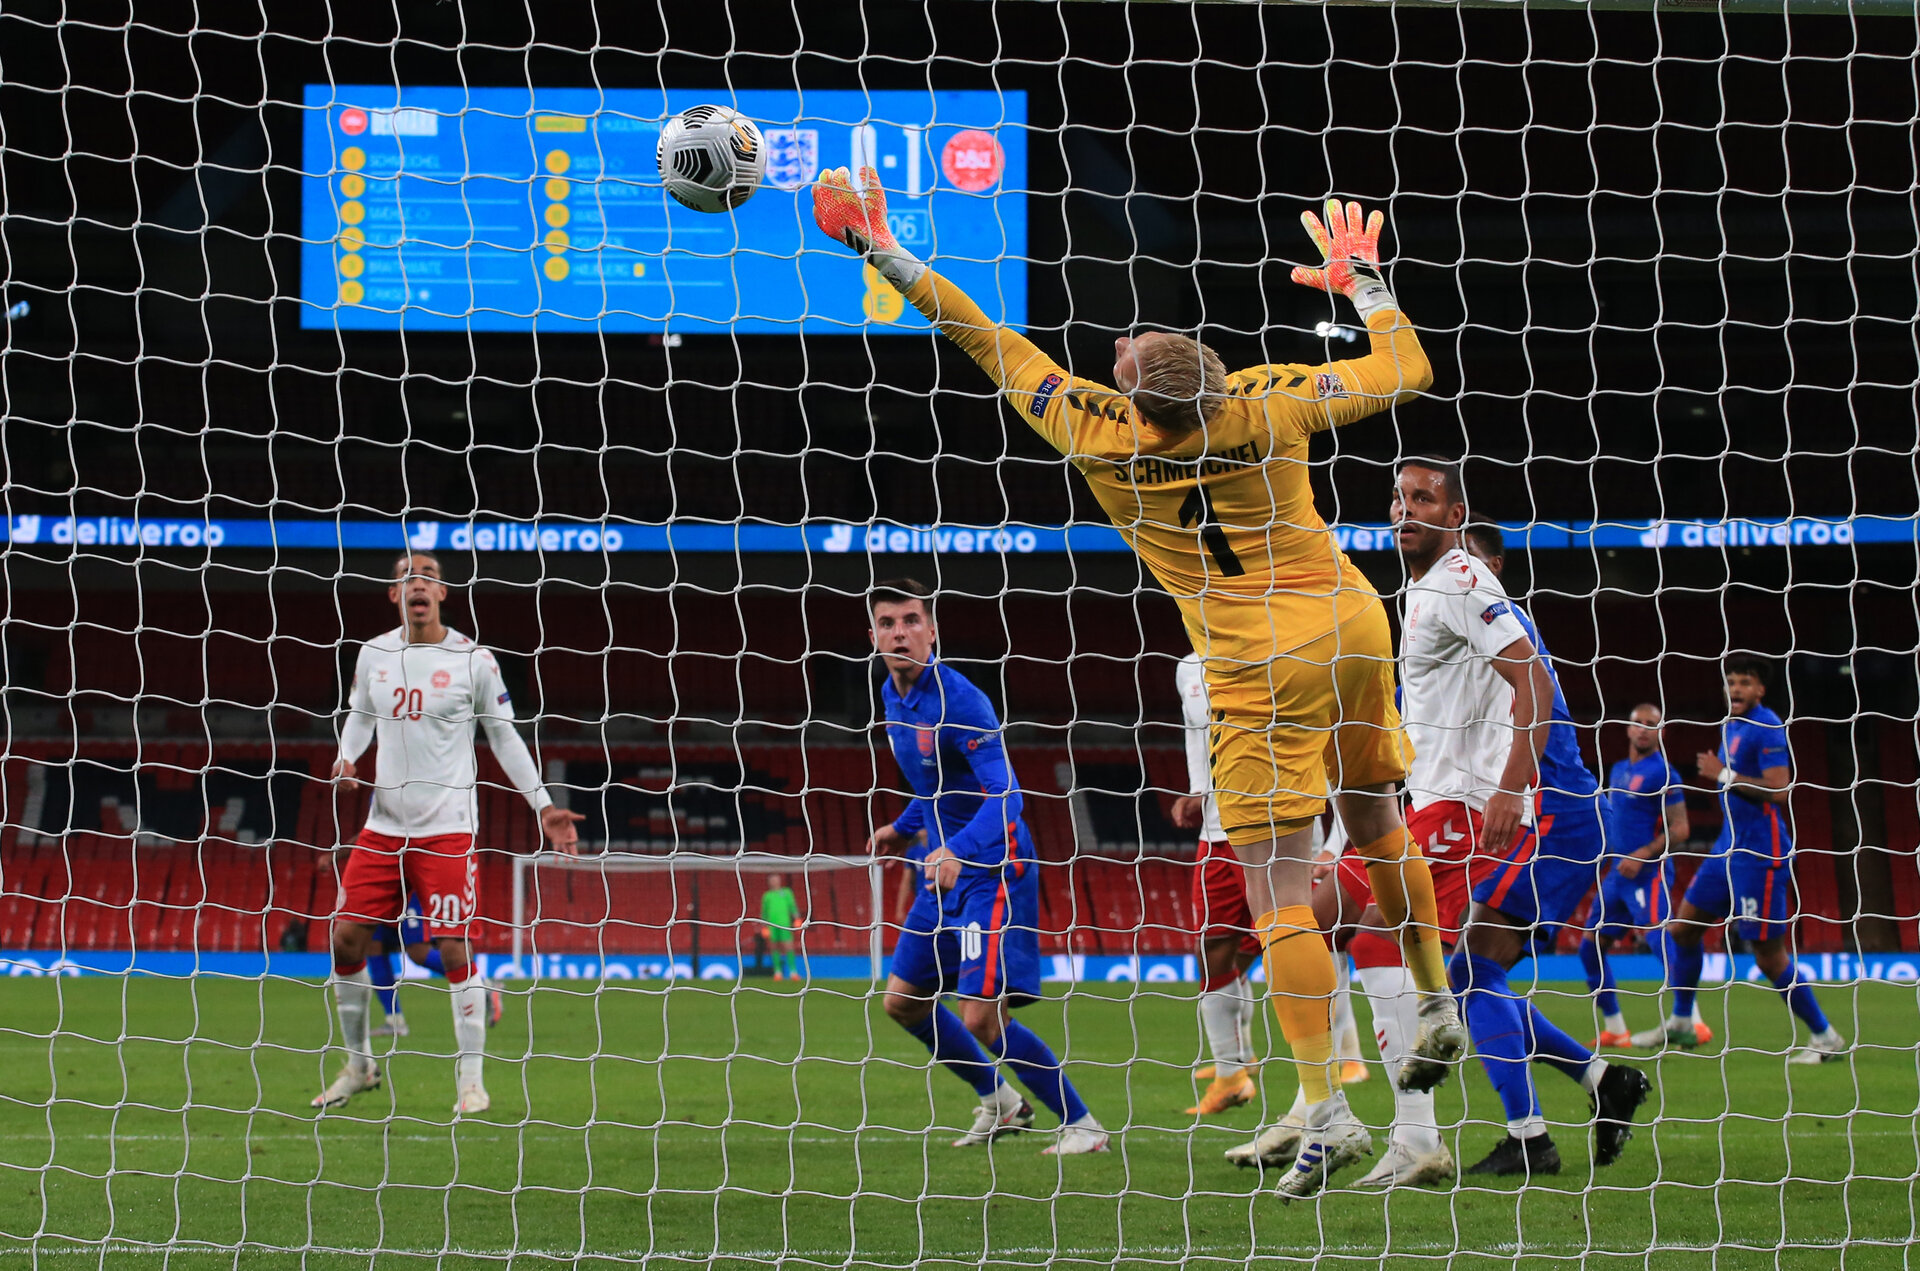 LONDON, ENGLAND - OCTOBER 14: Mason Mount of England heads the ball but is saved by Kasper Schmeichel of Denmark  during the UEFA Nations League group stage match between England and Denmark at Wembley Stadium on October 14, 2020 in London, England. Football Stadiums around Europe remain empty due to the Coronavirus Pandemic as Government social distancing laws prohibit fans inside venues resulting in fixtures being played behind closed doors. (Photo by Nick Potts - Pool/Getty Images)